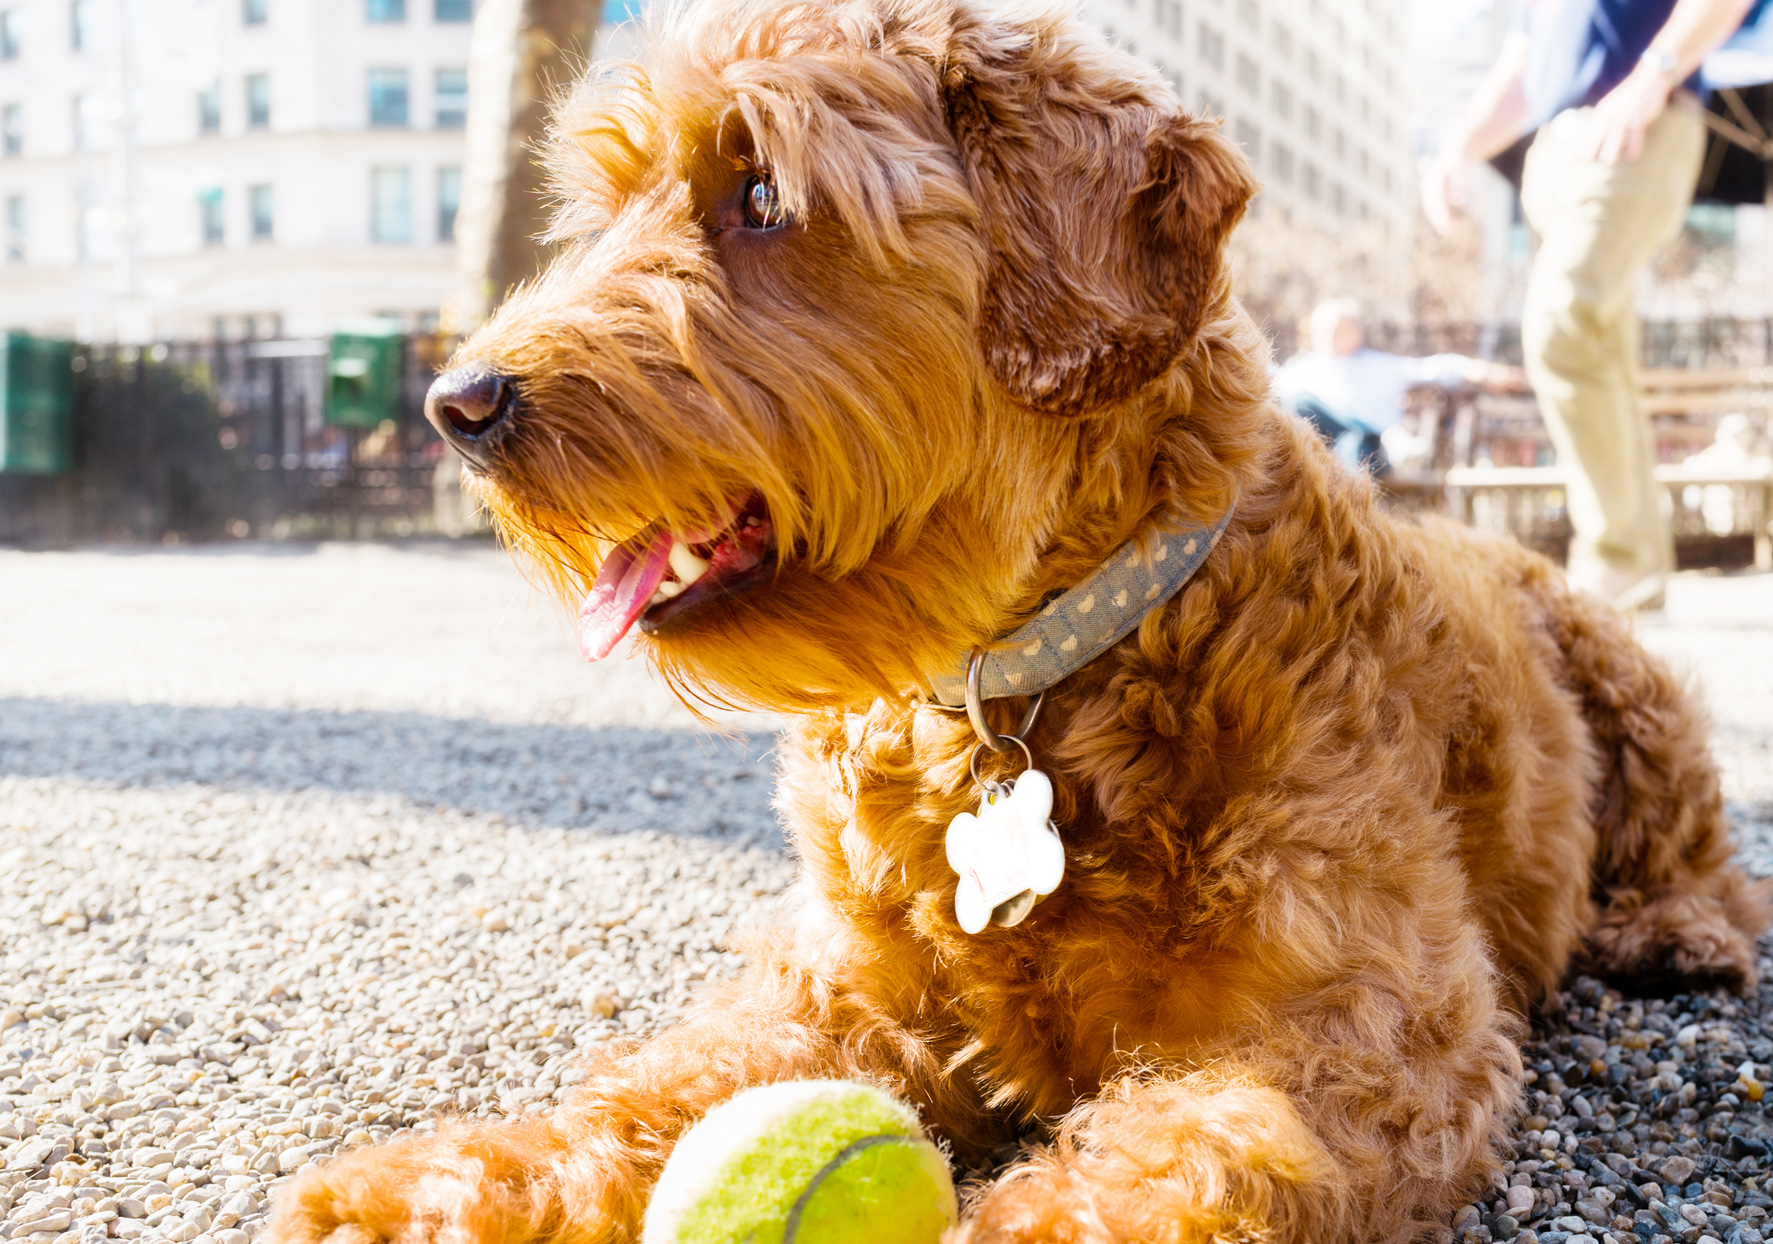 goldendoodle laying on ground with tennis ball